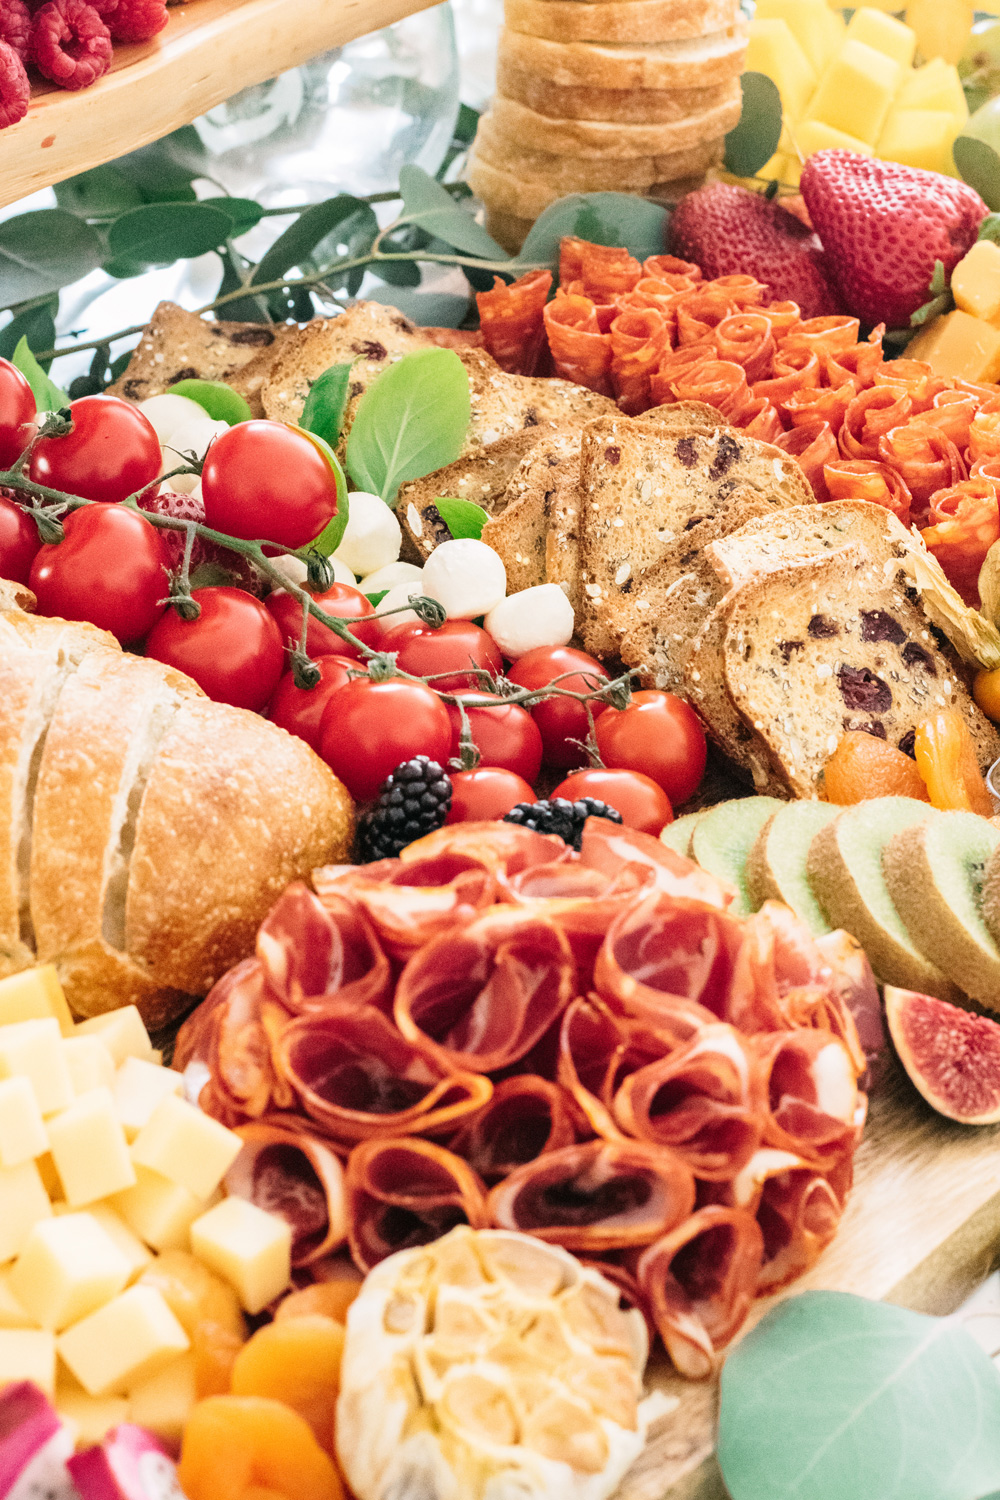 A charcuterie board made just for your event